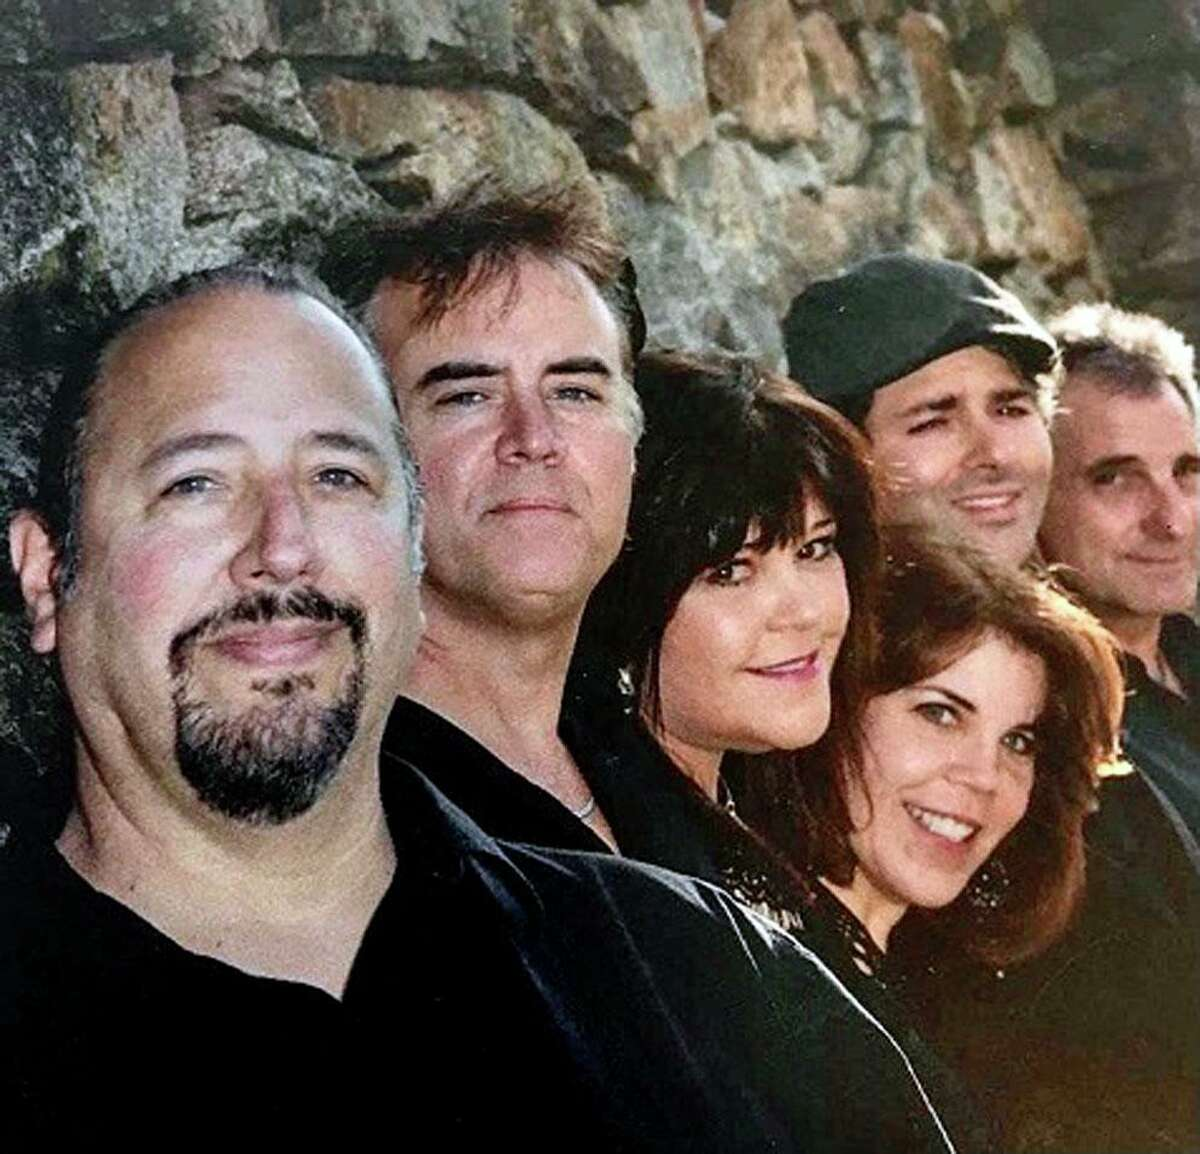 The Sin Sisters Band, which has been performing since 1986, will mark its 35th anniversary Saturday with a show at The Stand in Branford.